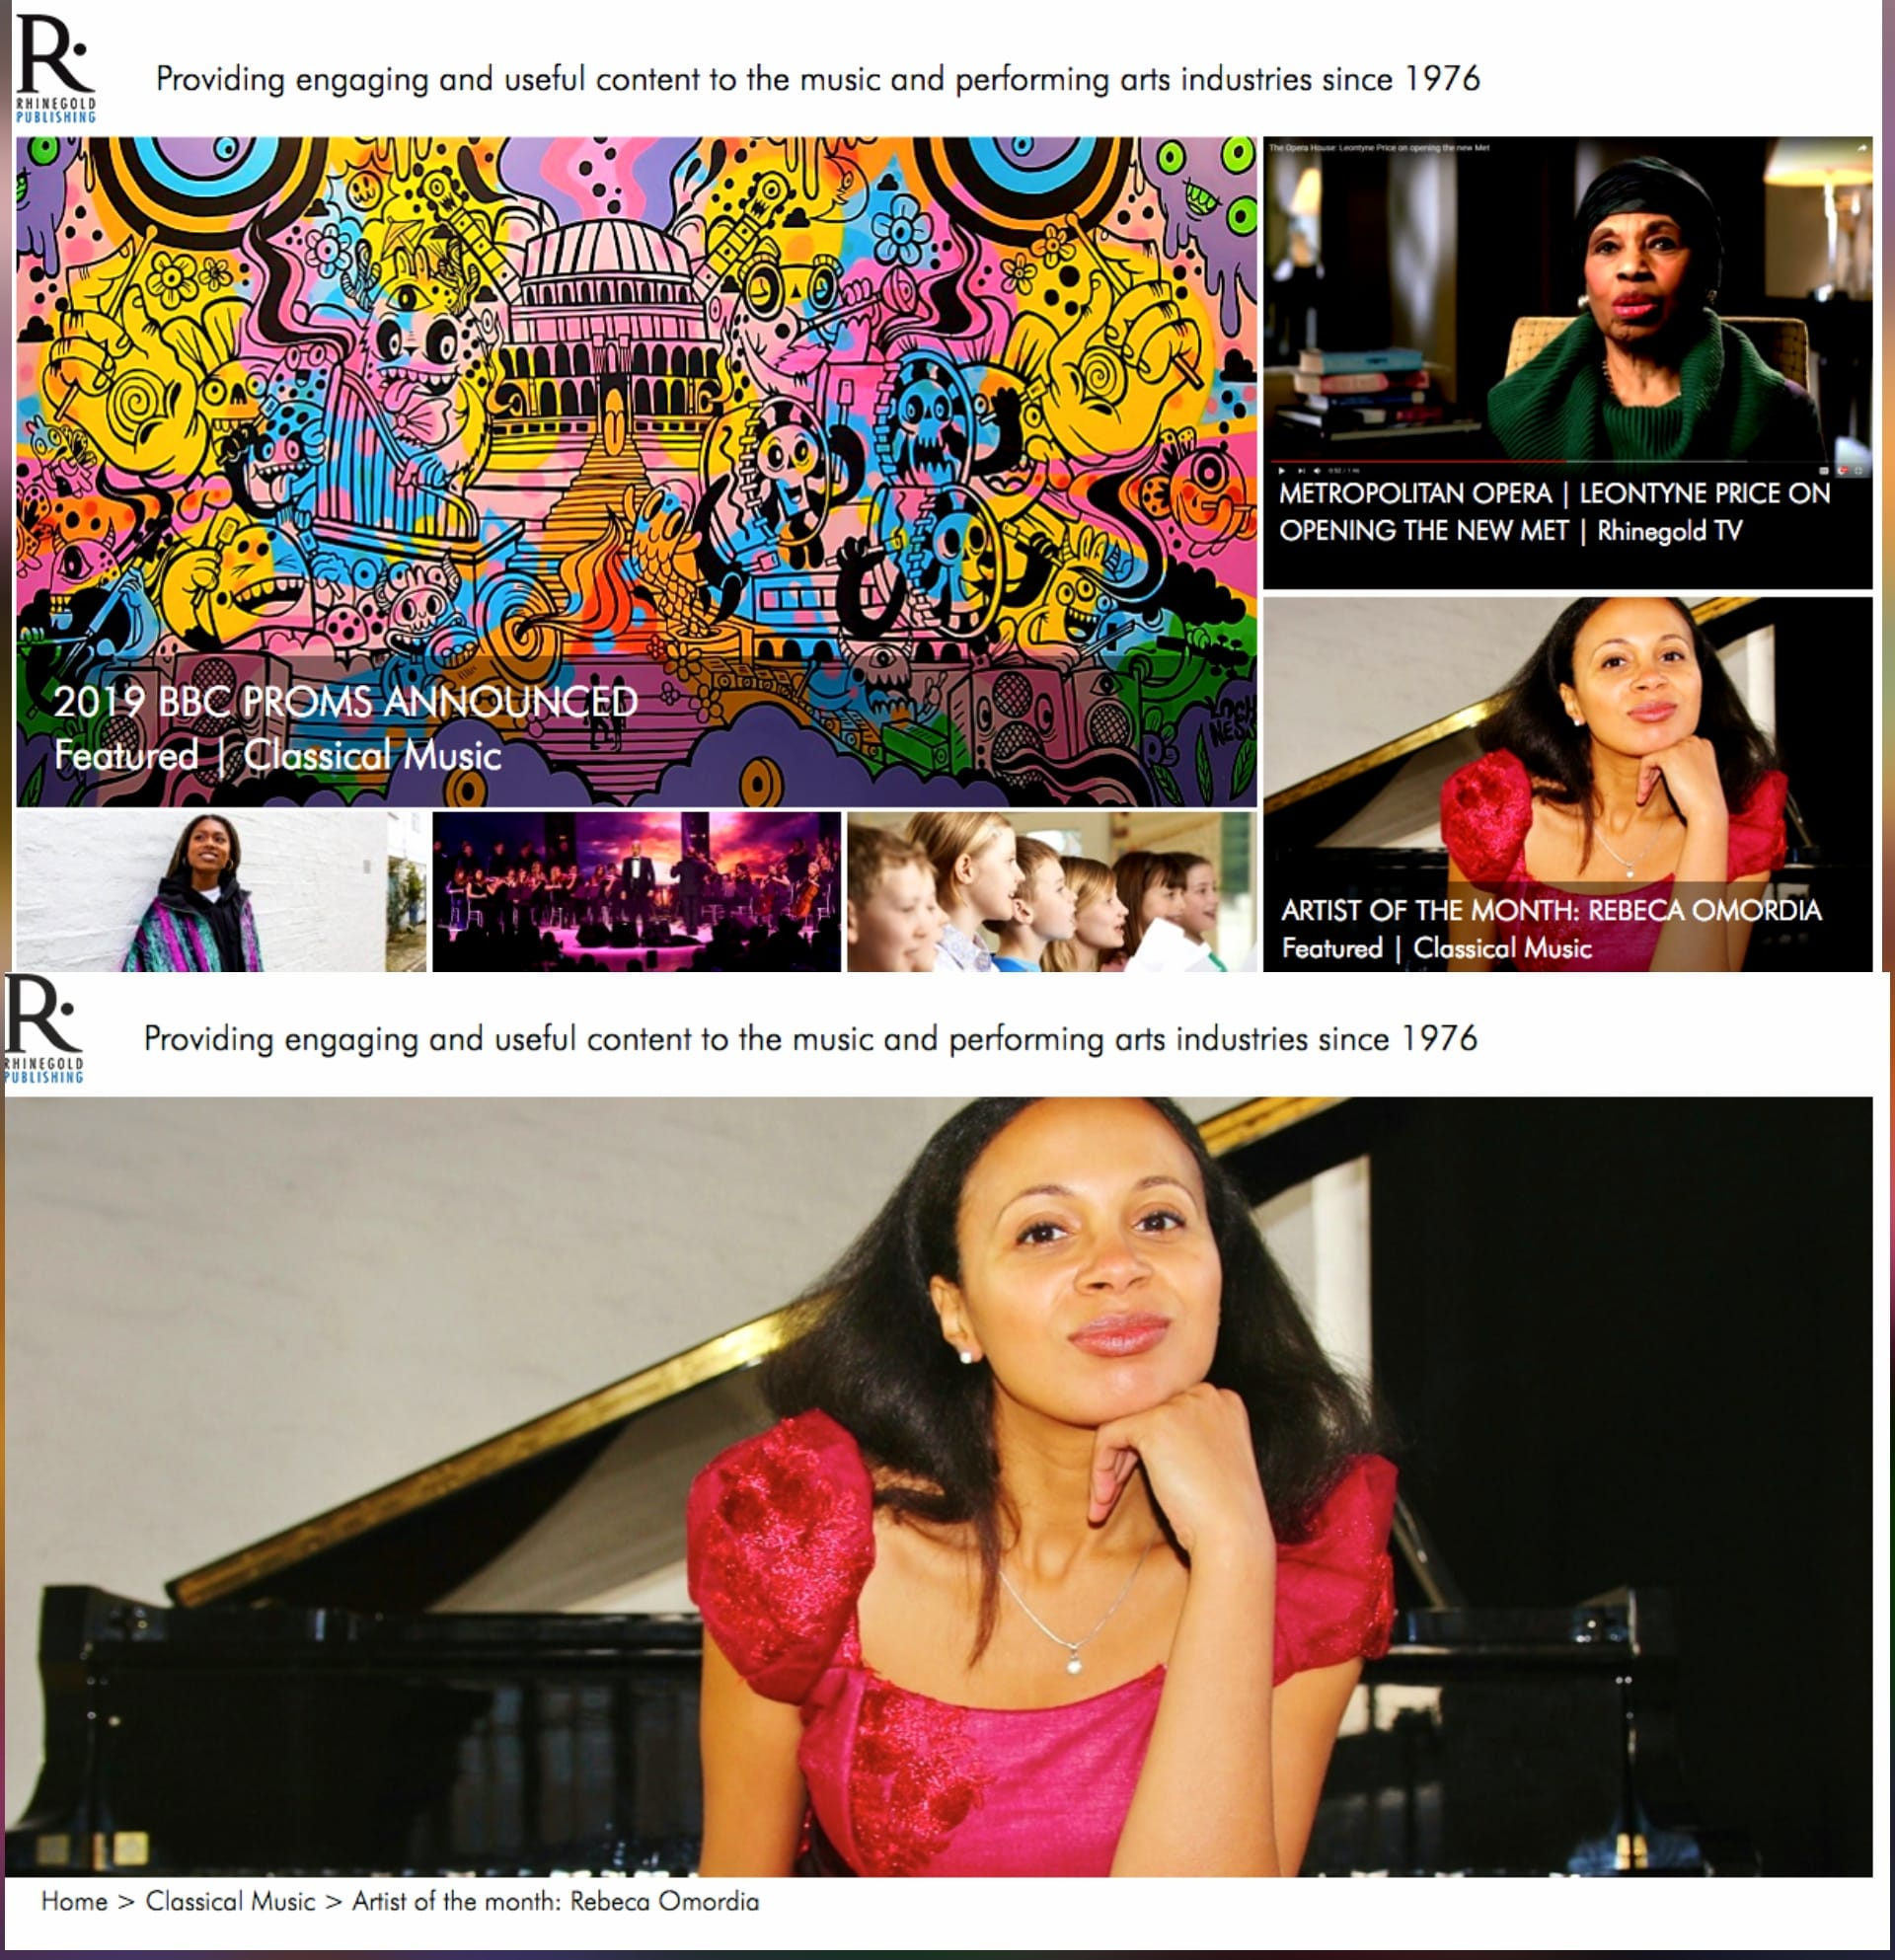 ARTIST OF THE MONTH, Classical Music Magazine, May 2019 - Rebeca is featured as ARTIST OF THE MONTH in the May 2019 issue of Classical Music Magazine. You can read the full interview here